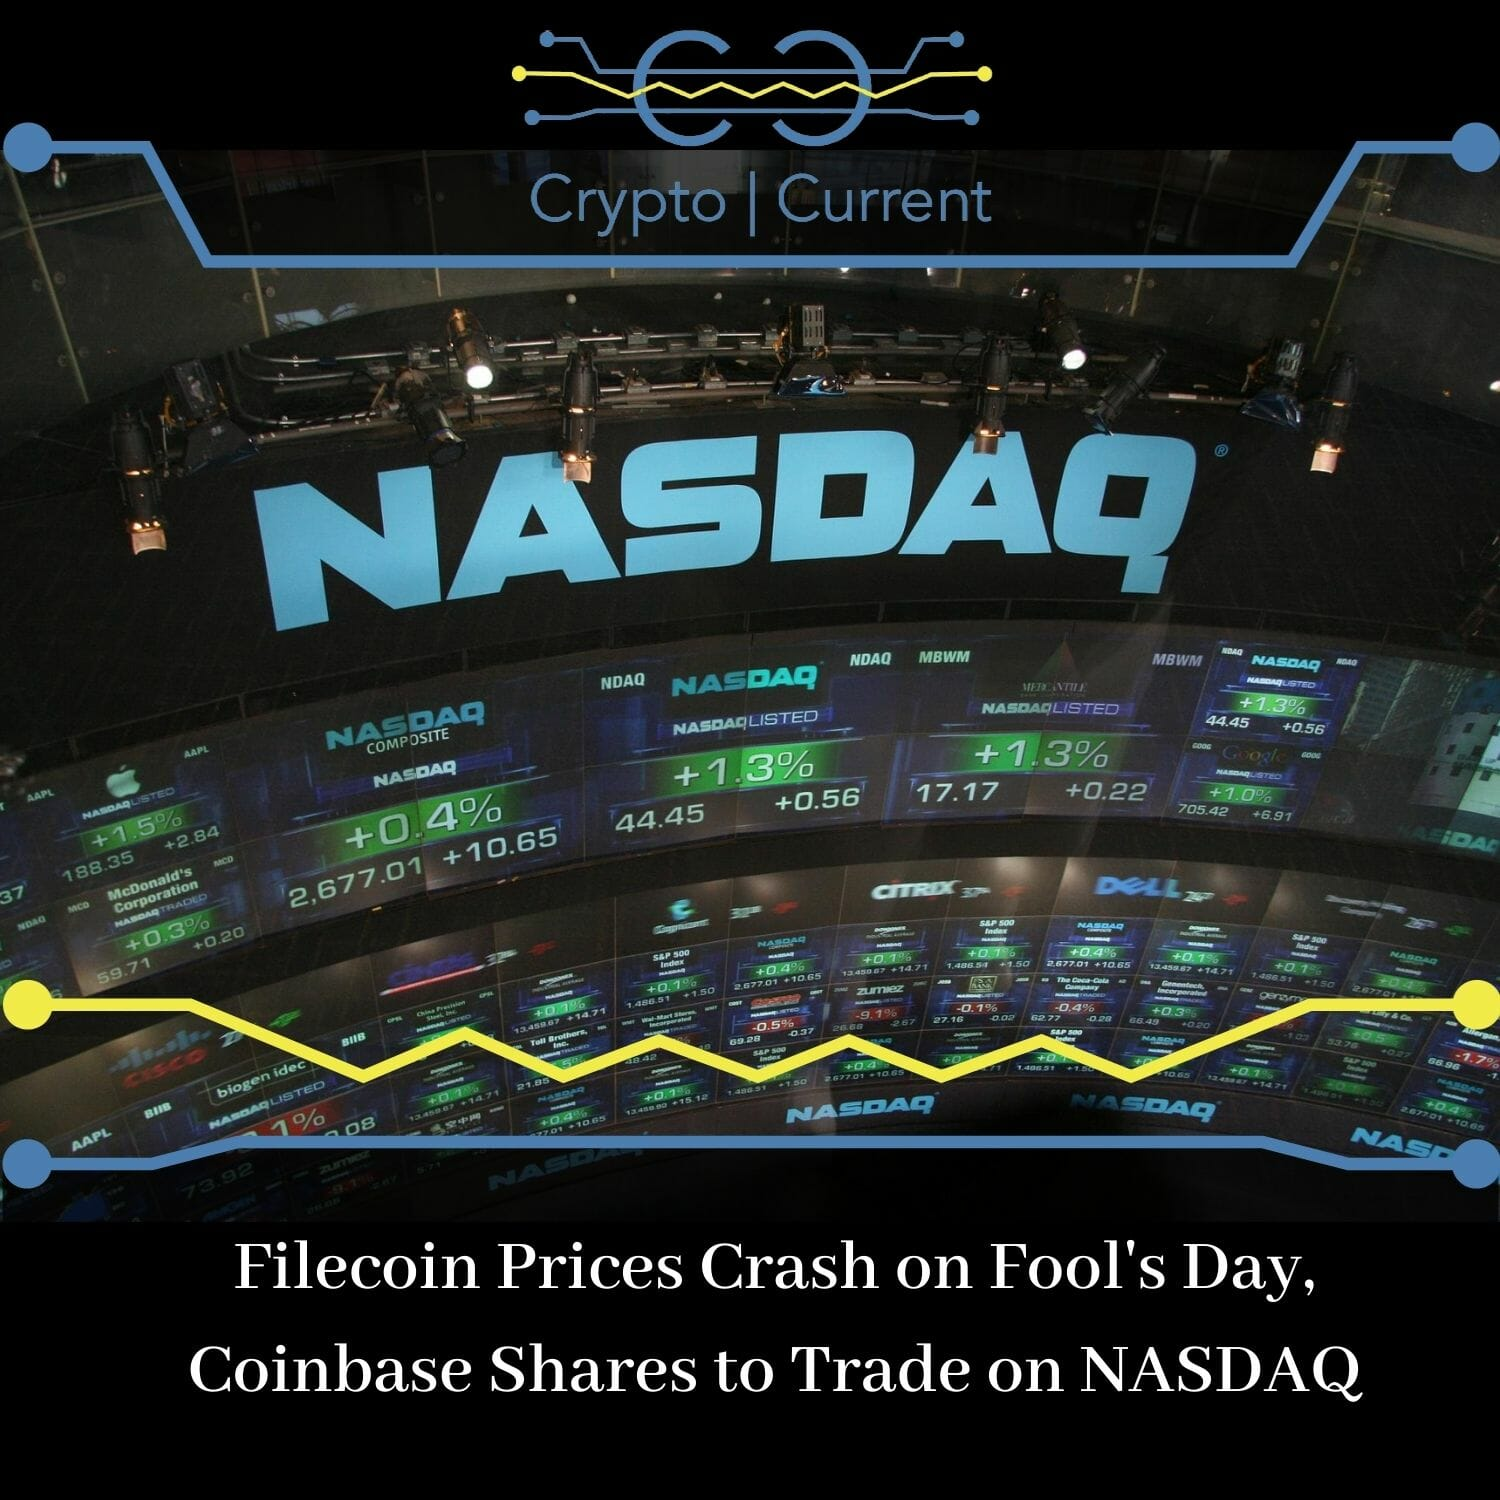 Filecoin Prices Crash on Fool's Day, Coinbase Shares to Trade on NASDAQ